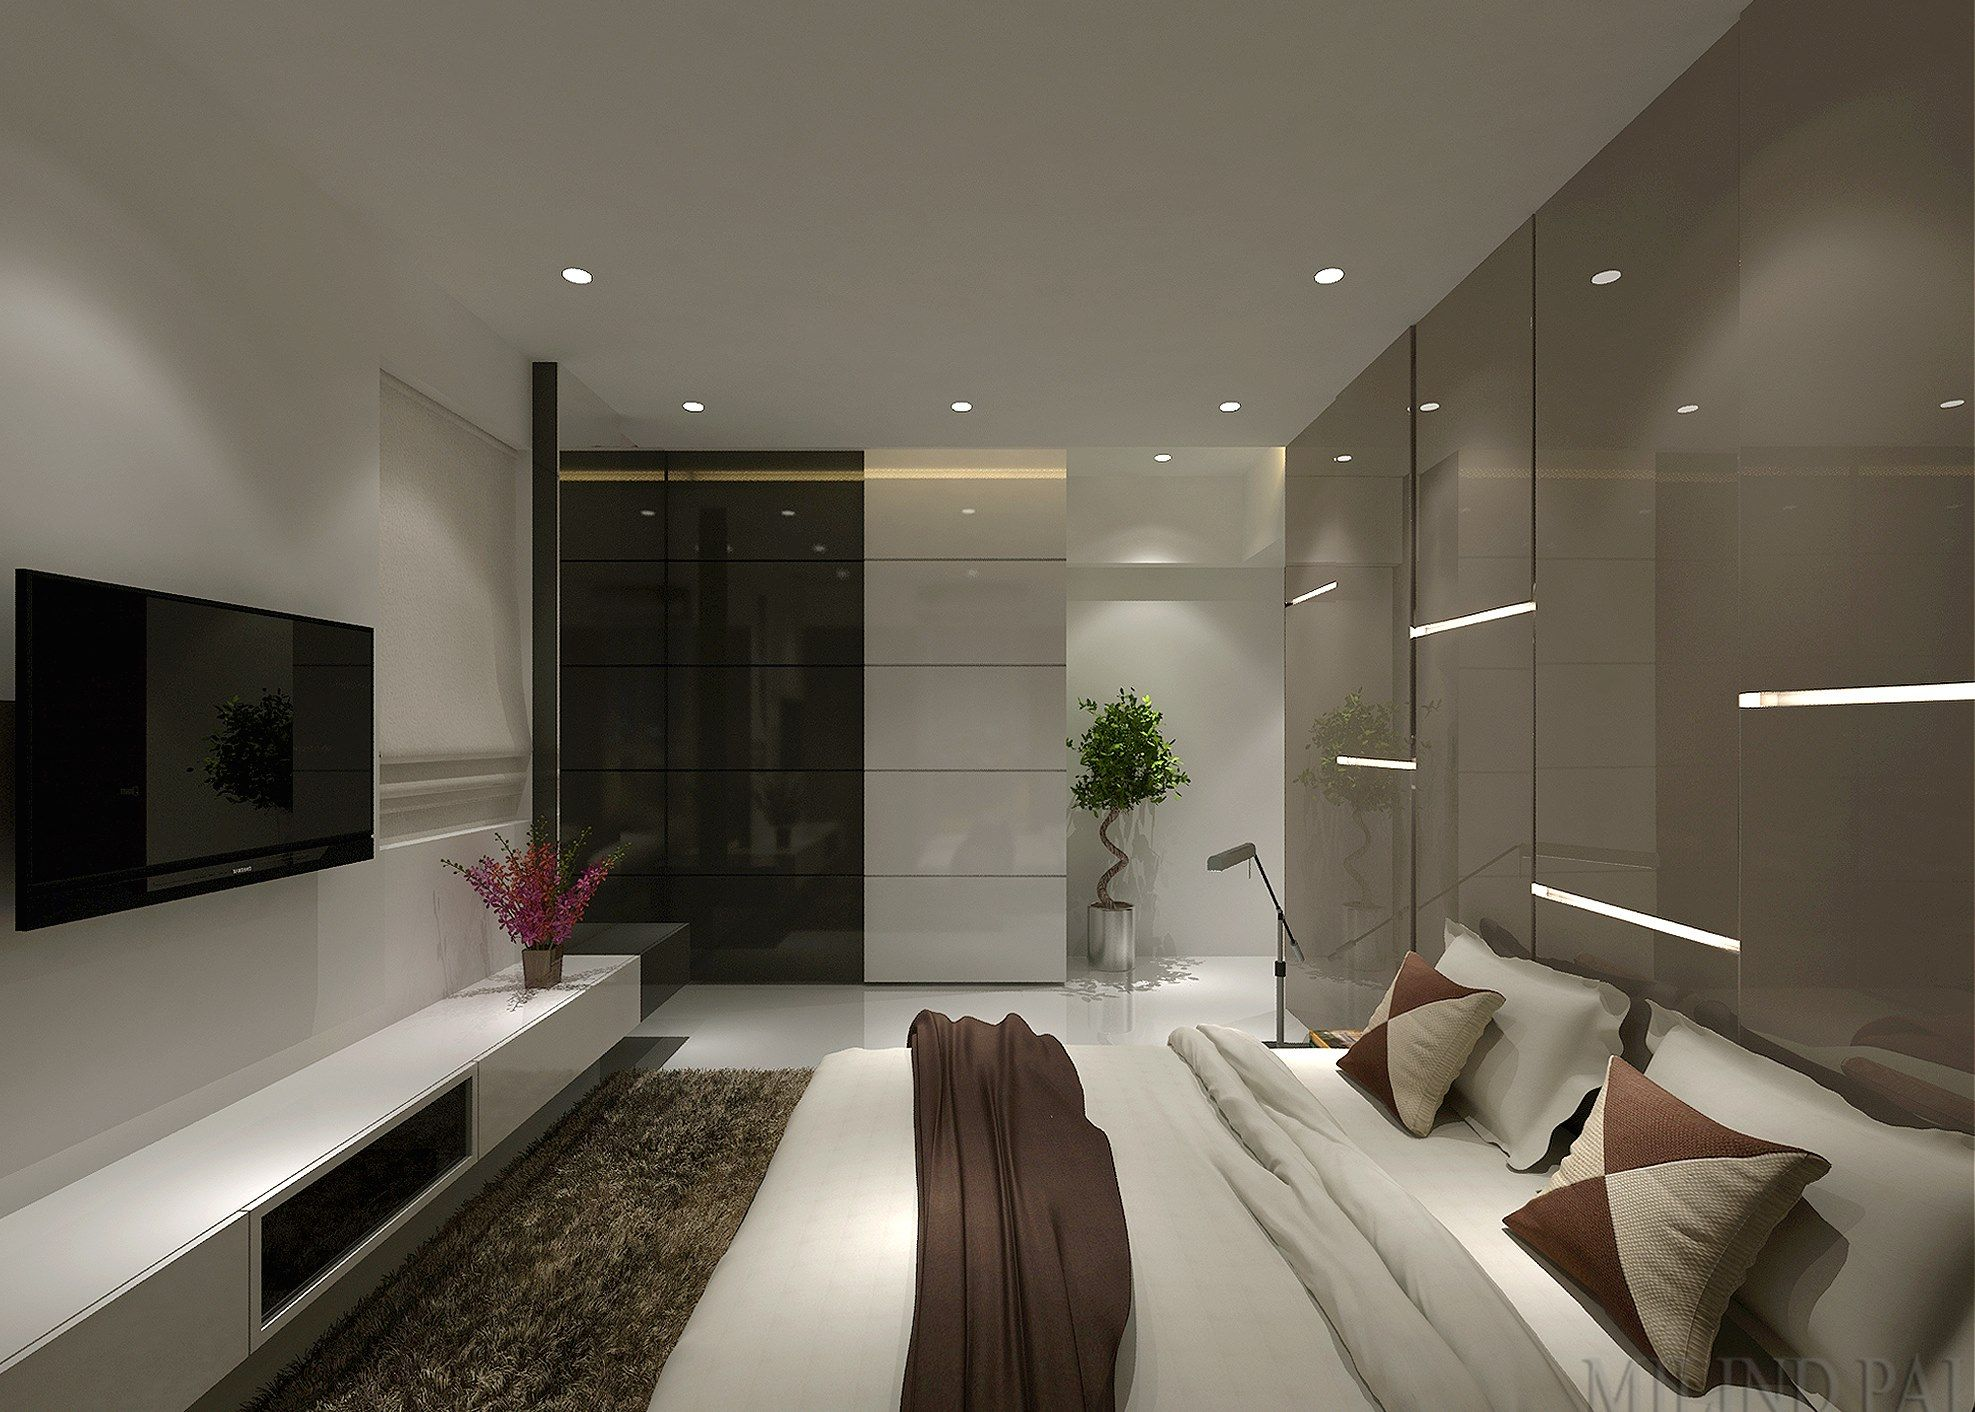 Bedroom Design for a young IT professional couple. See ...